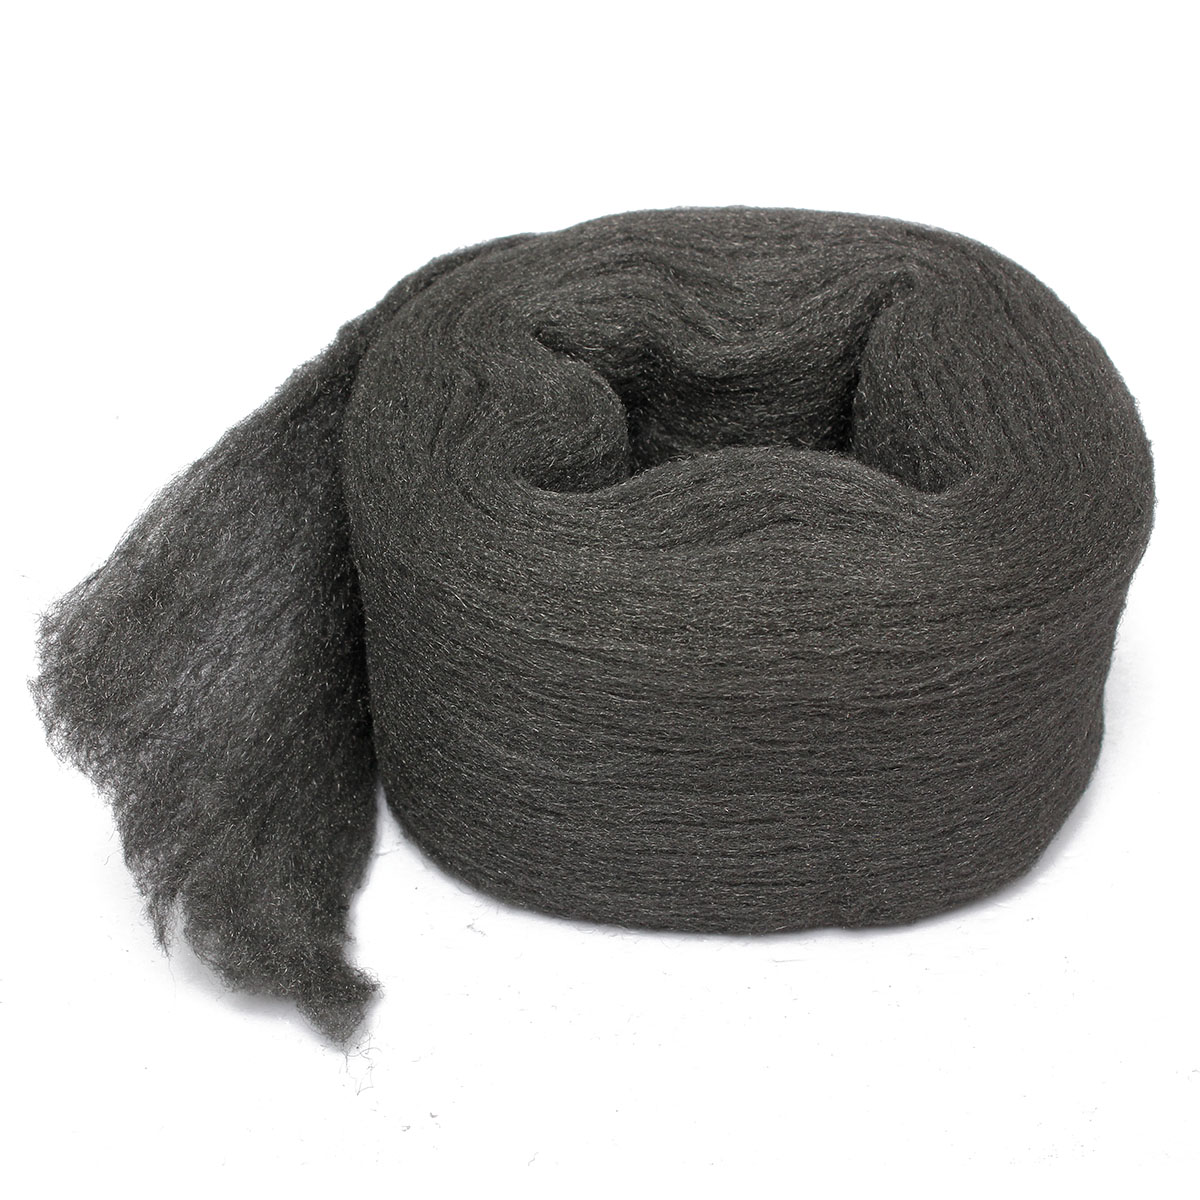 1x2x5xSteel-Wire-Wool-Grade-0000-3-3m-For-Polishing-Cleaning-Remover-Non-Crumble